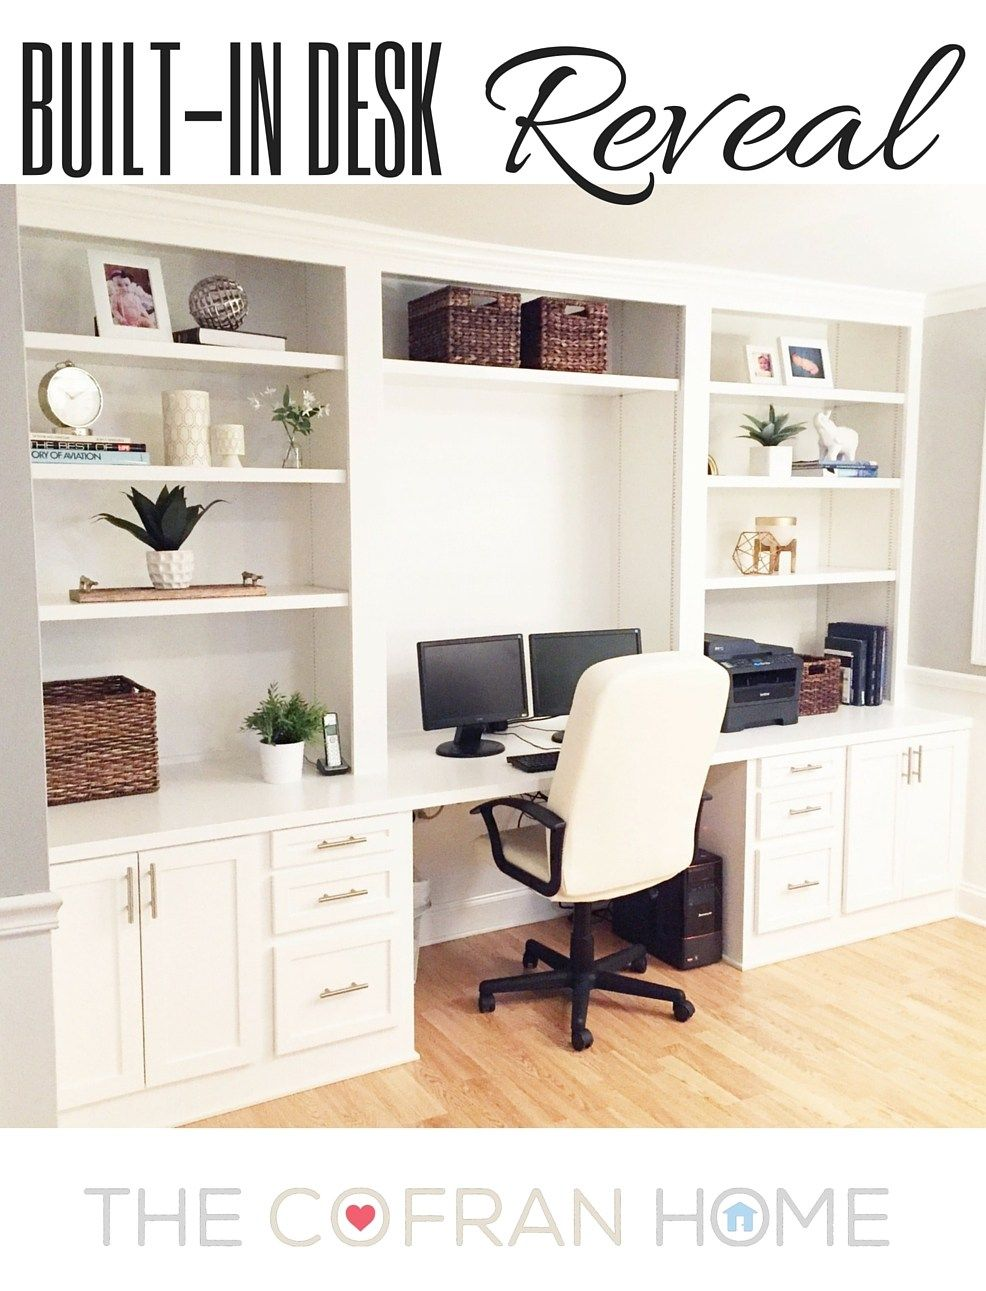 Built In Desk Reveal The Cofran Home Home Office Decor Home Office Design Home Office Space